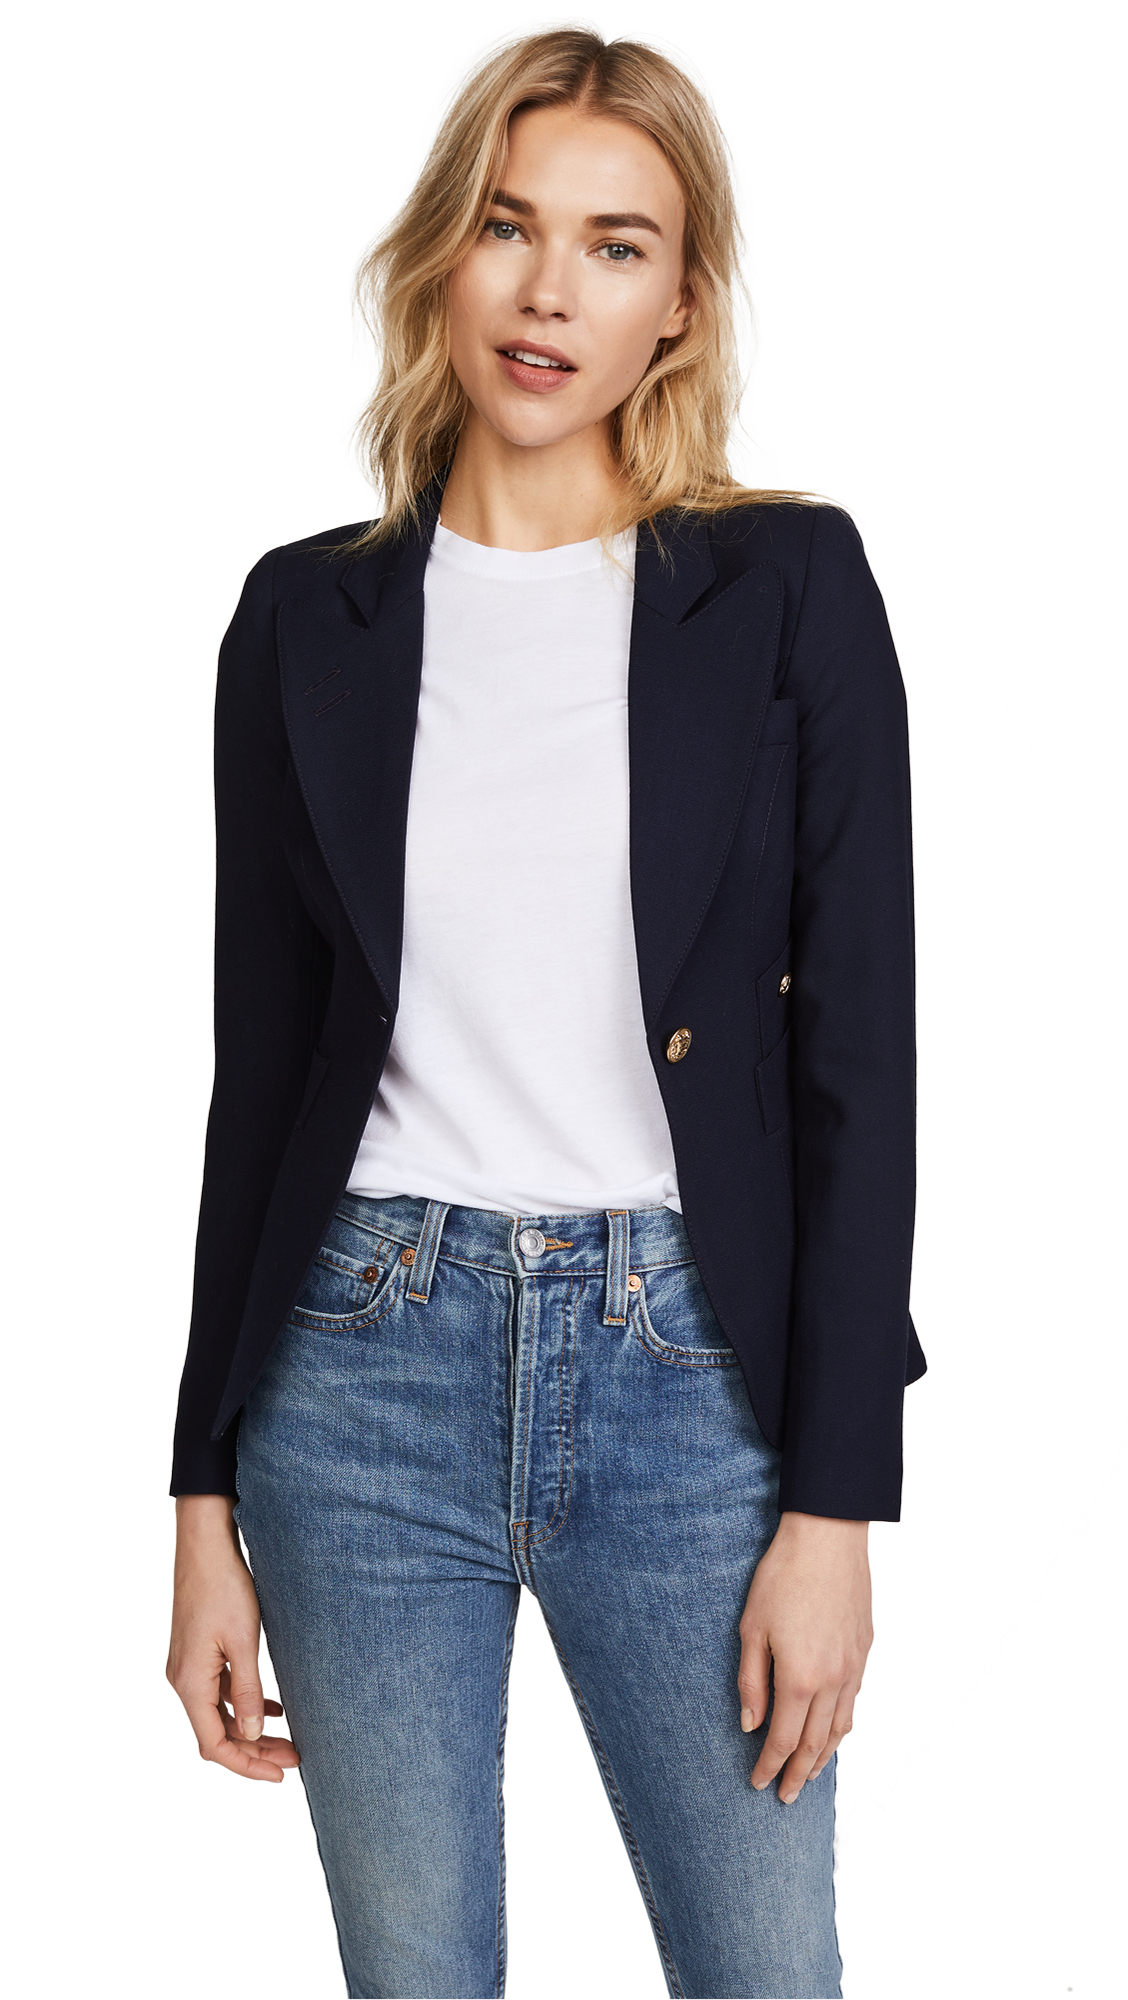 SMYTHE One Button Blazer - Navy